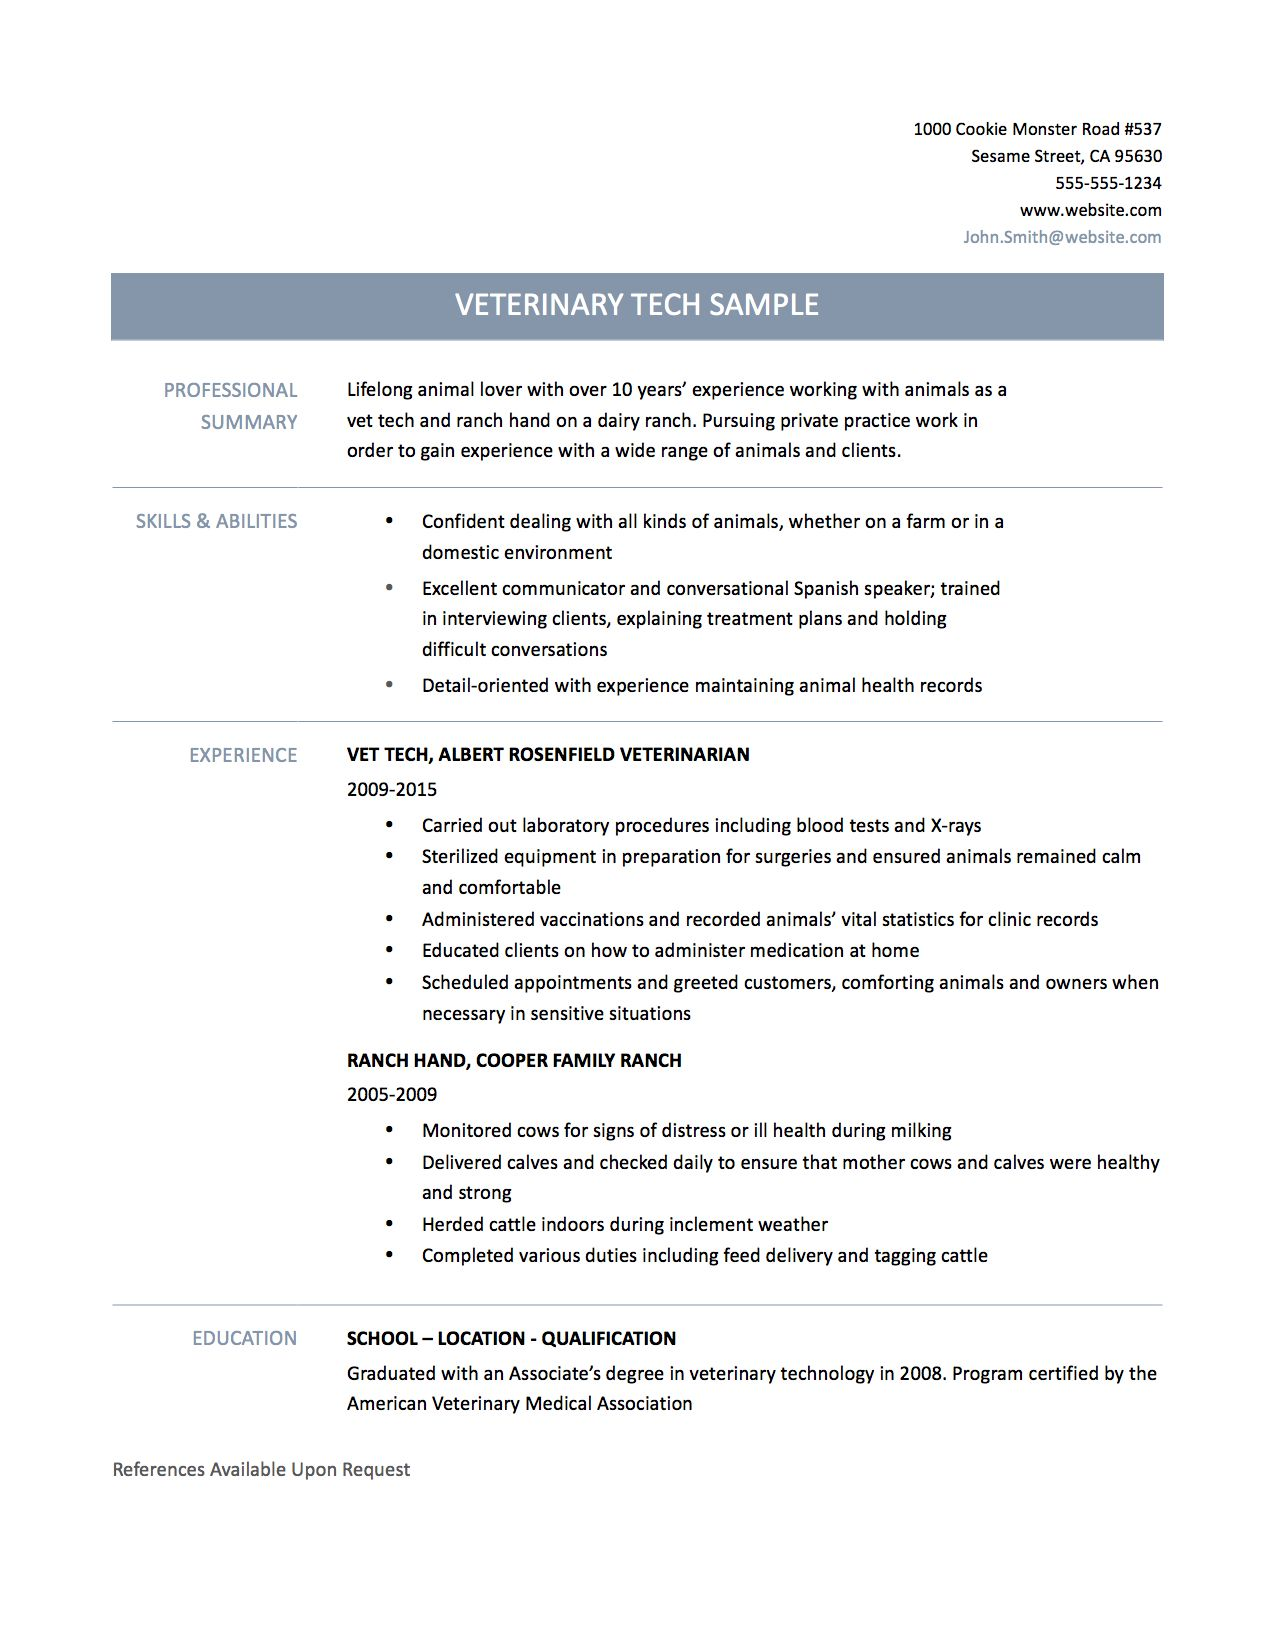 example cover letter for animal job